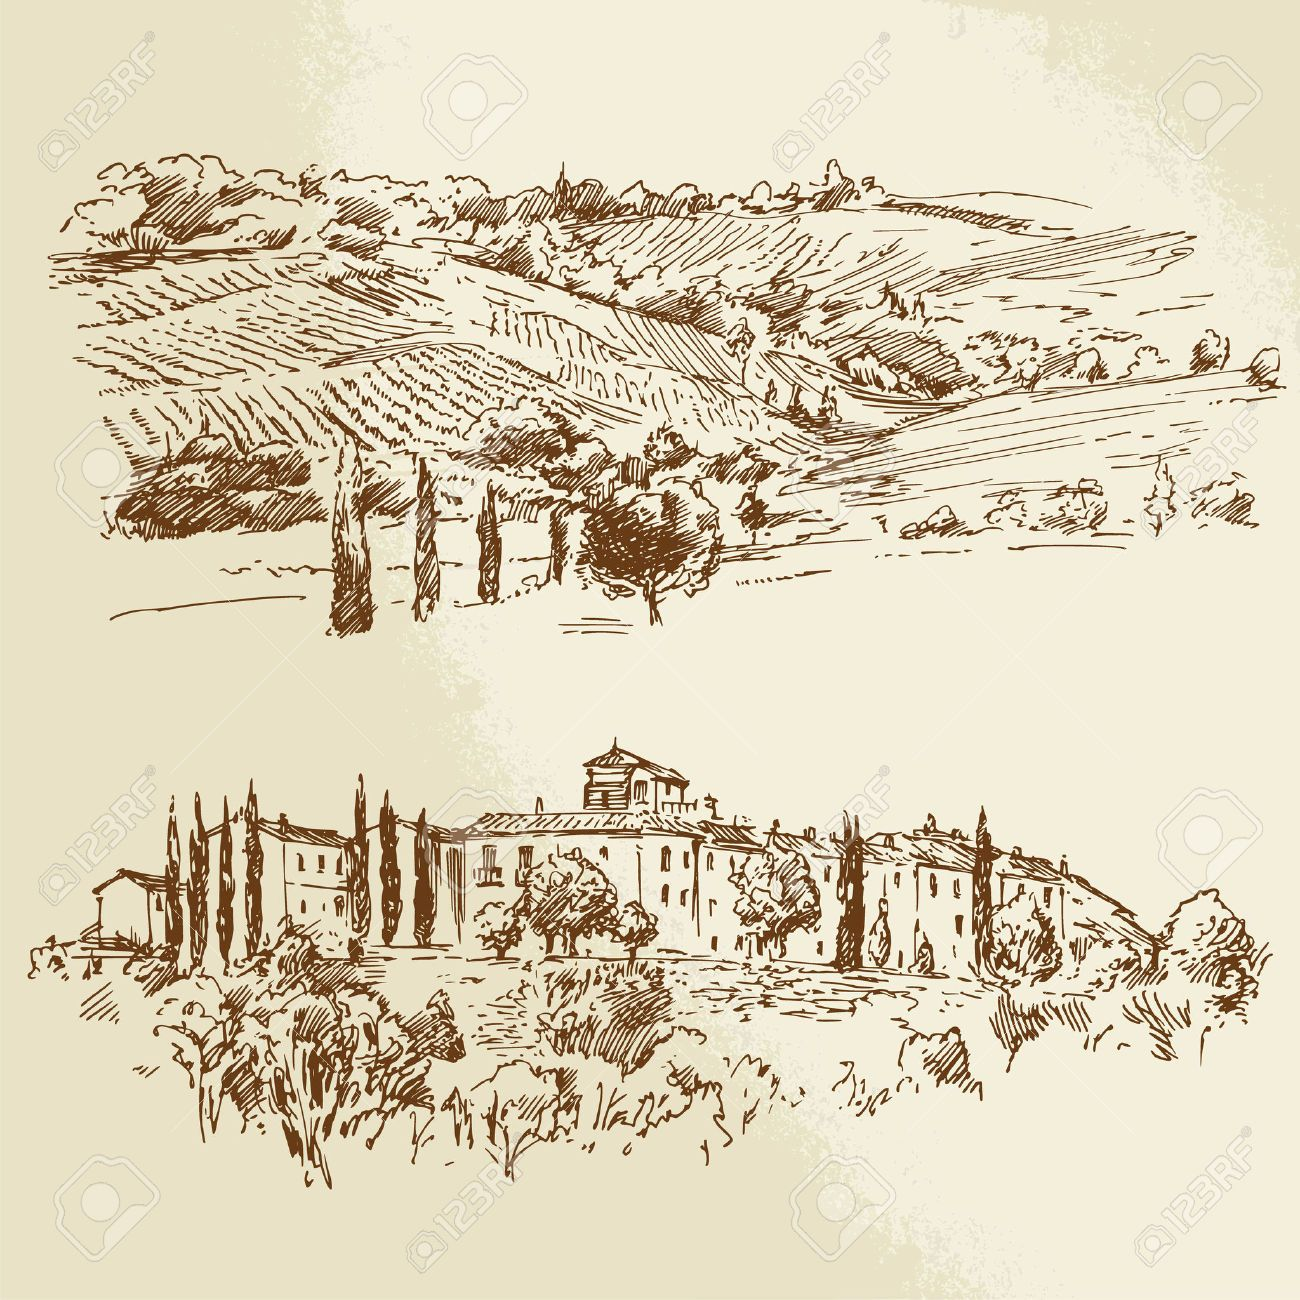 1300x1300 25307611 Vineyard Romantic Landscape Hand Drawn Illustration Stock